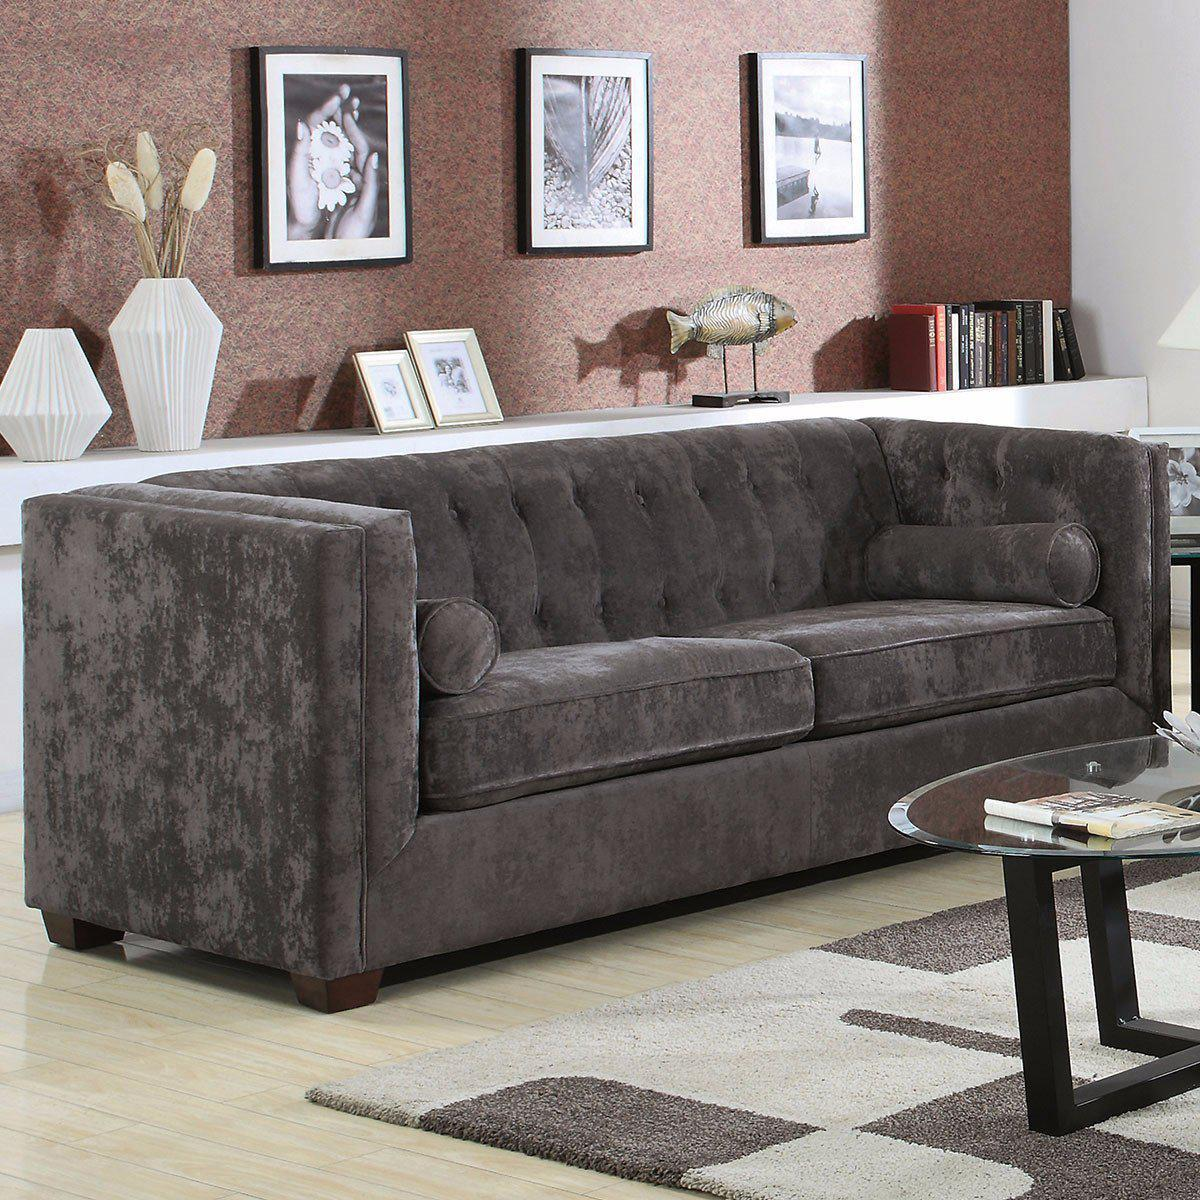 Alexis Sofa-sofas-Jennifer Furniture